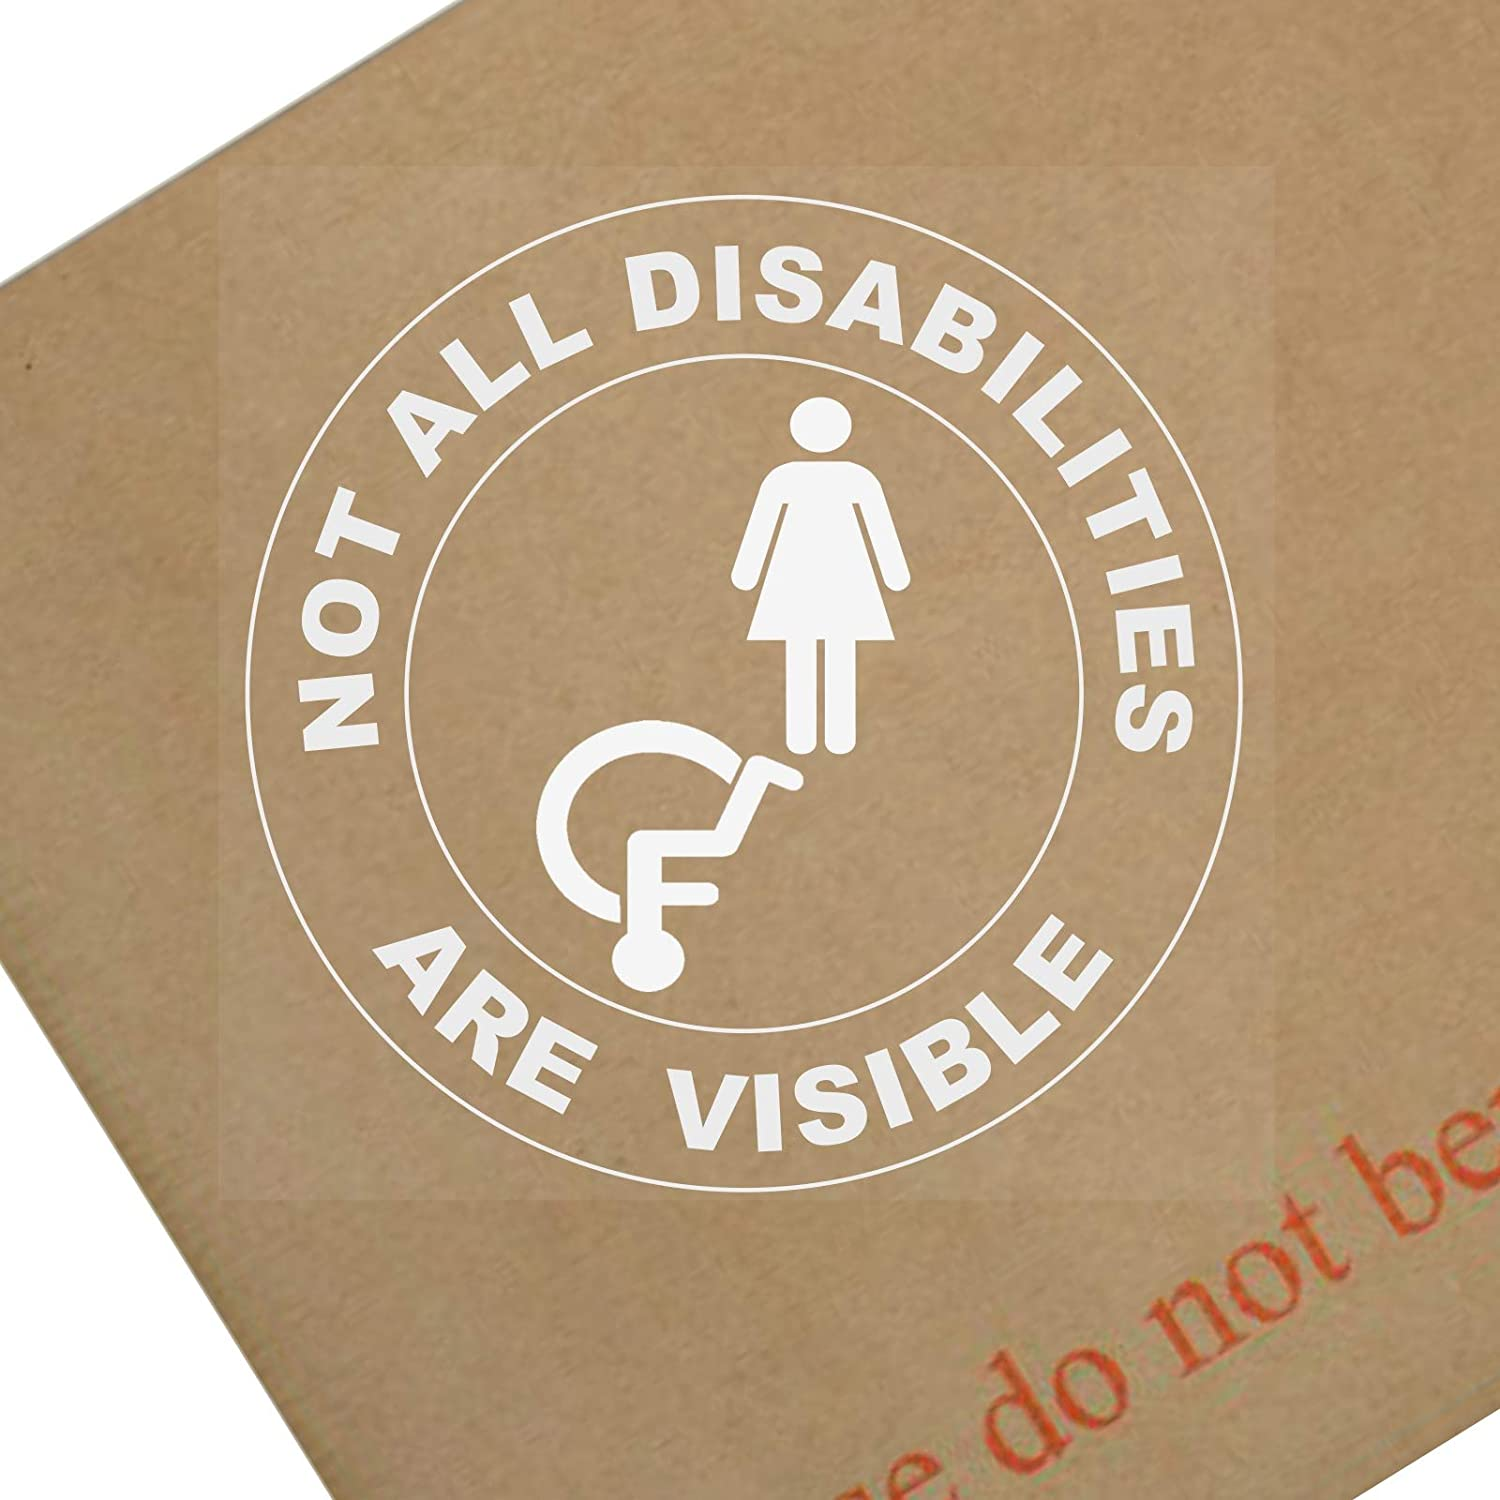 1 x Not All Disabilities Are Visible-FEMALE-ROUND-White onto Clear-WINDOW,Van,Truck,Bus,Disabled Sticker-Sign,Car,Badge,Blue,Holder,Warning,Notice,Driver,Passenger,Vehicle,Taxi,Cab,Mini Platinum Place